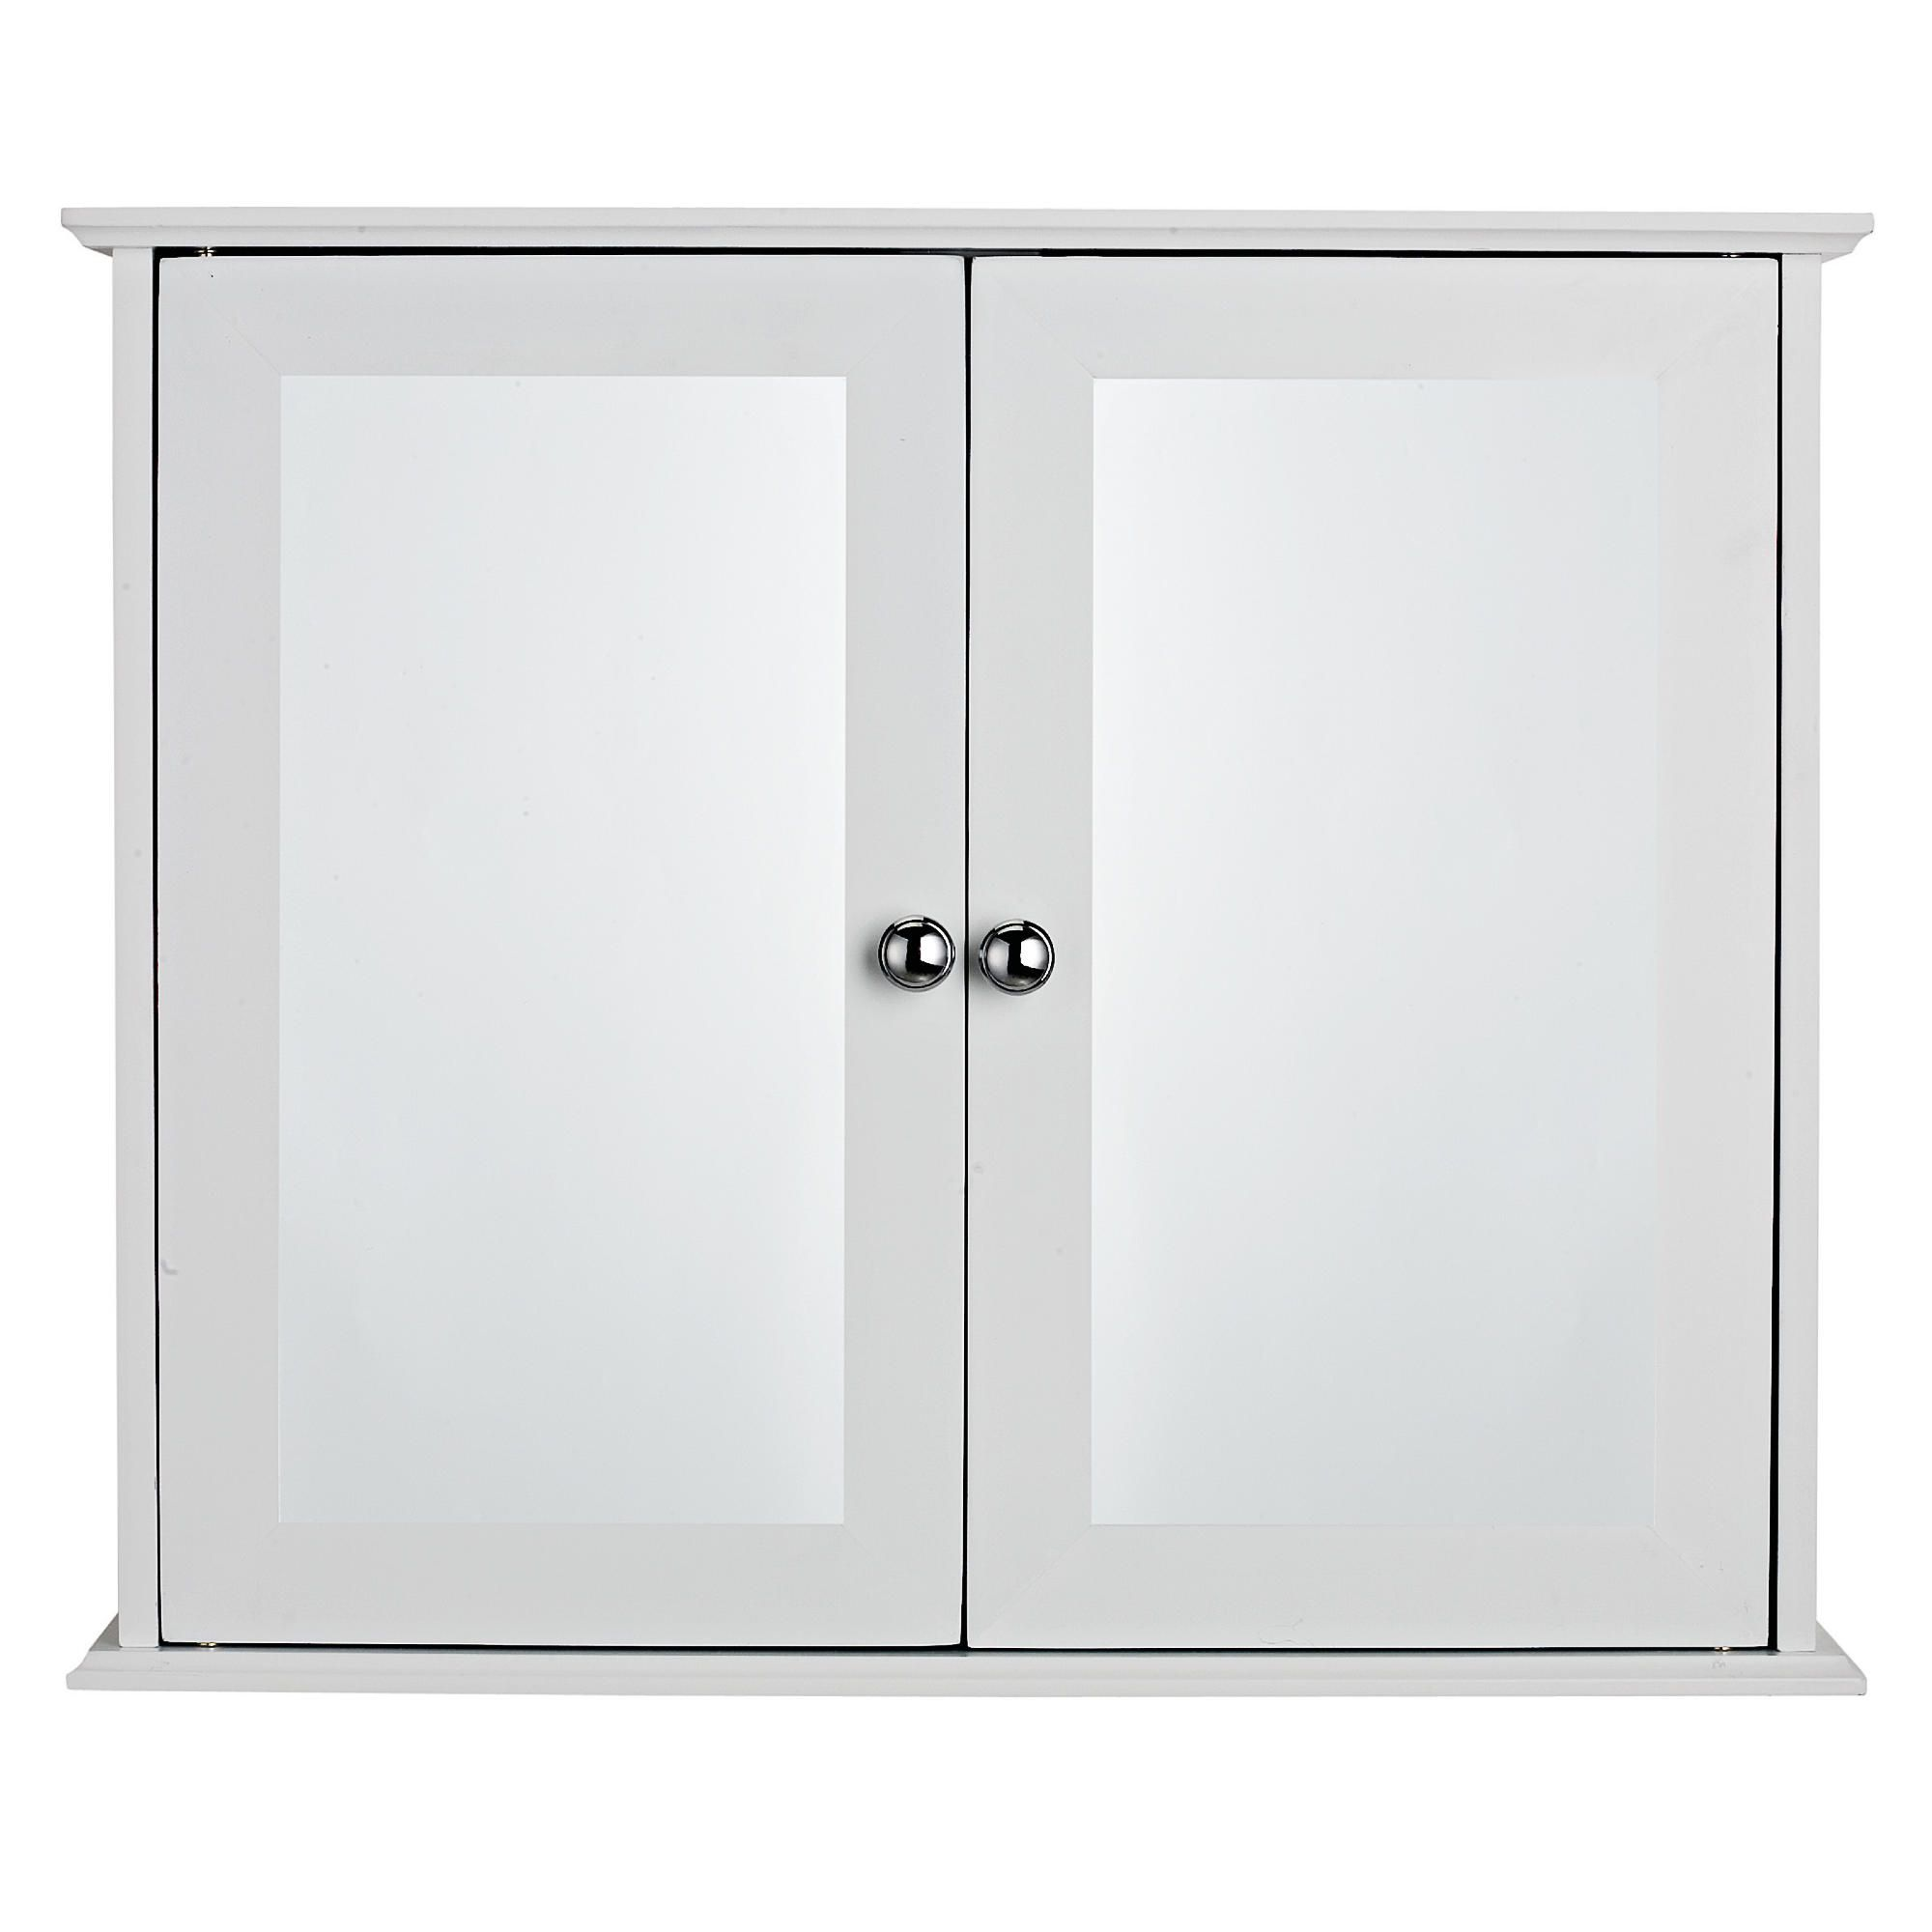 Sheringham White Wood Double Door Bathroom Cabinet